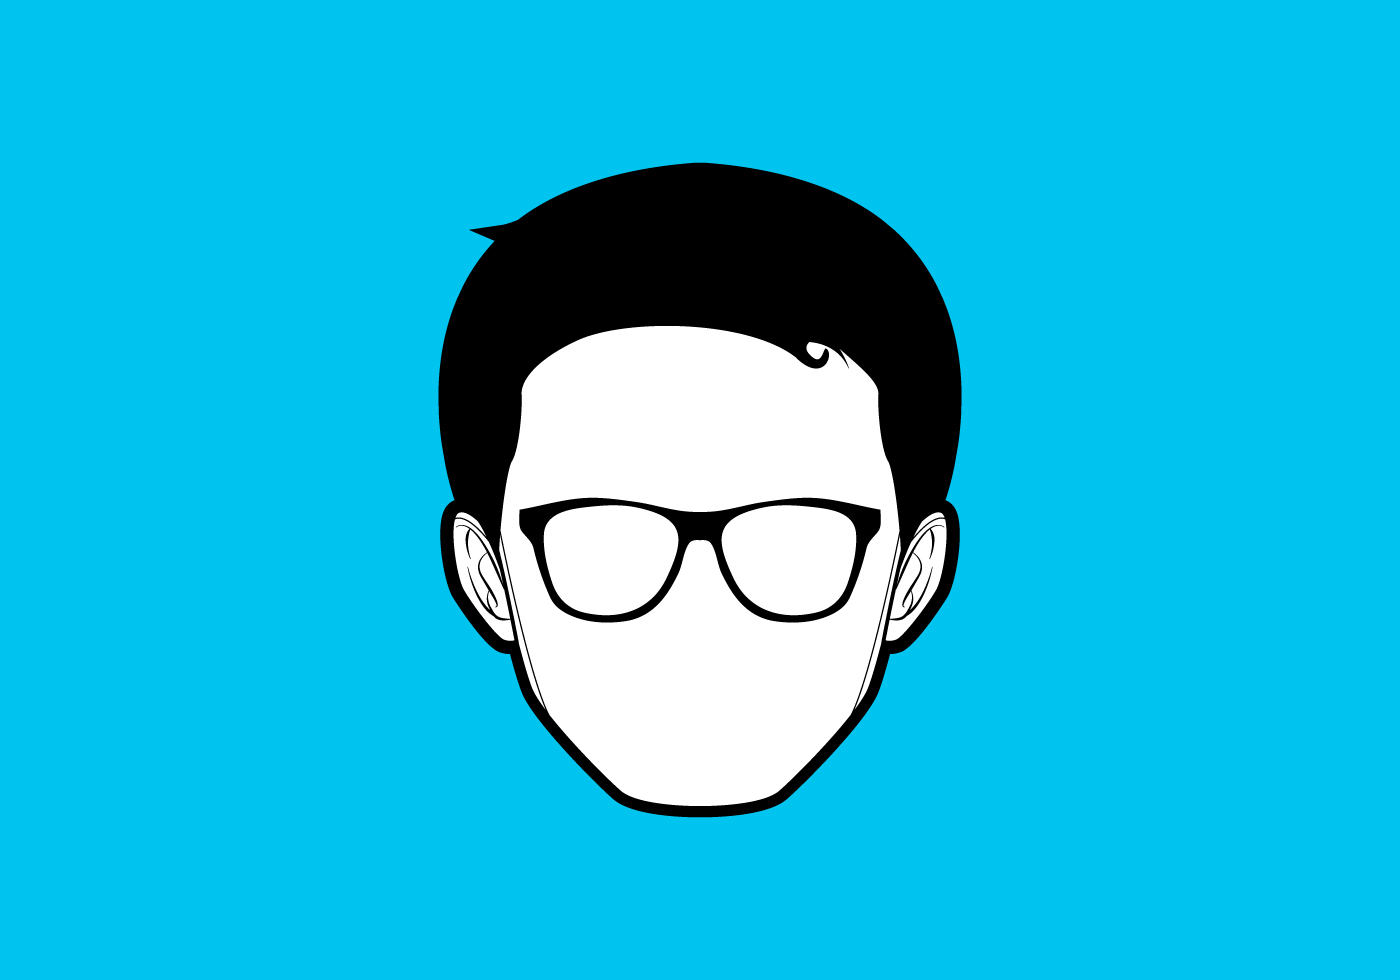 Simple Geek Vector Download Free Vector Art Stock